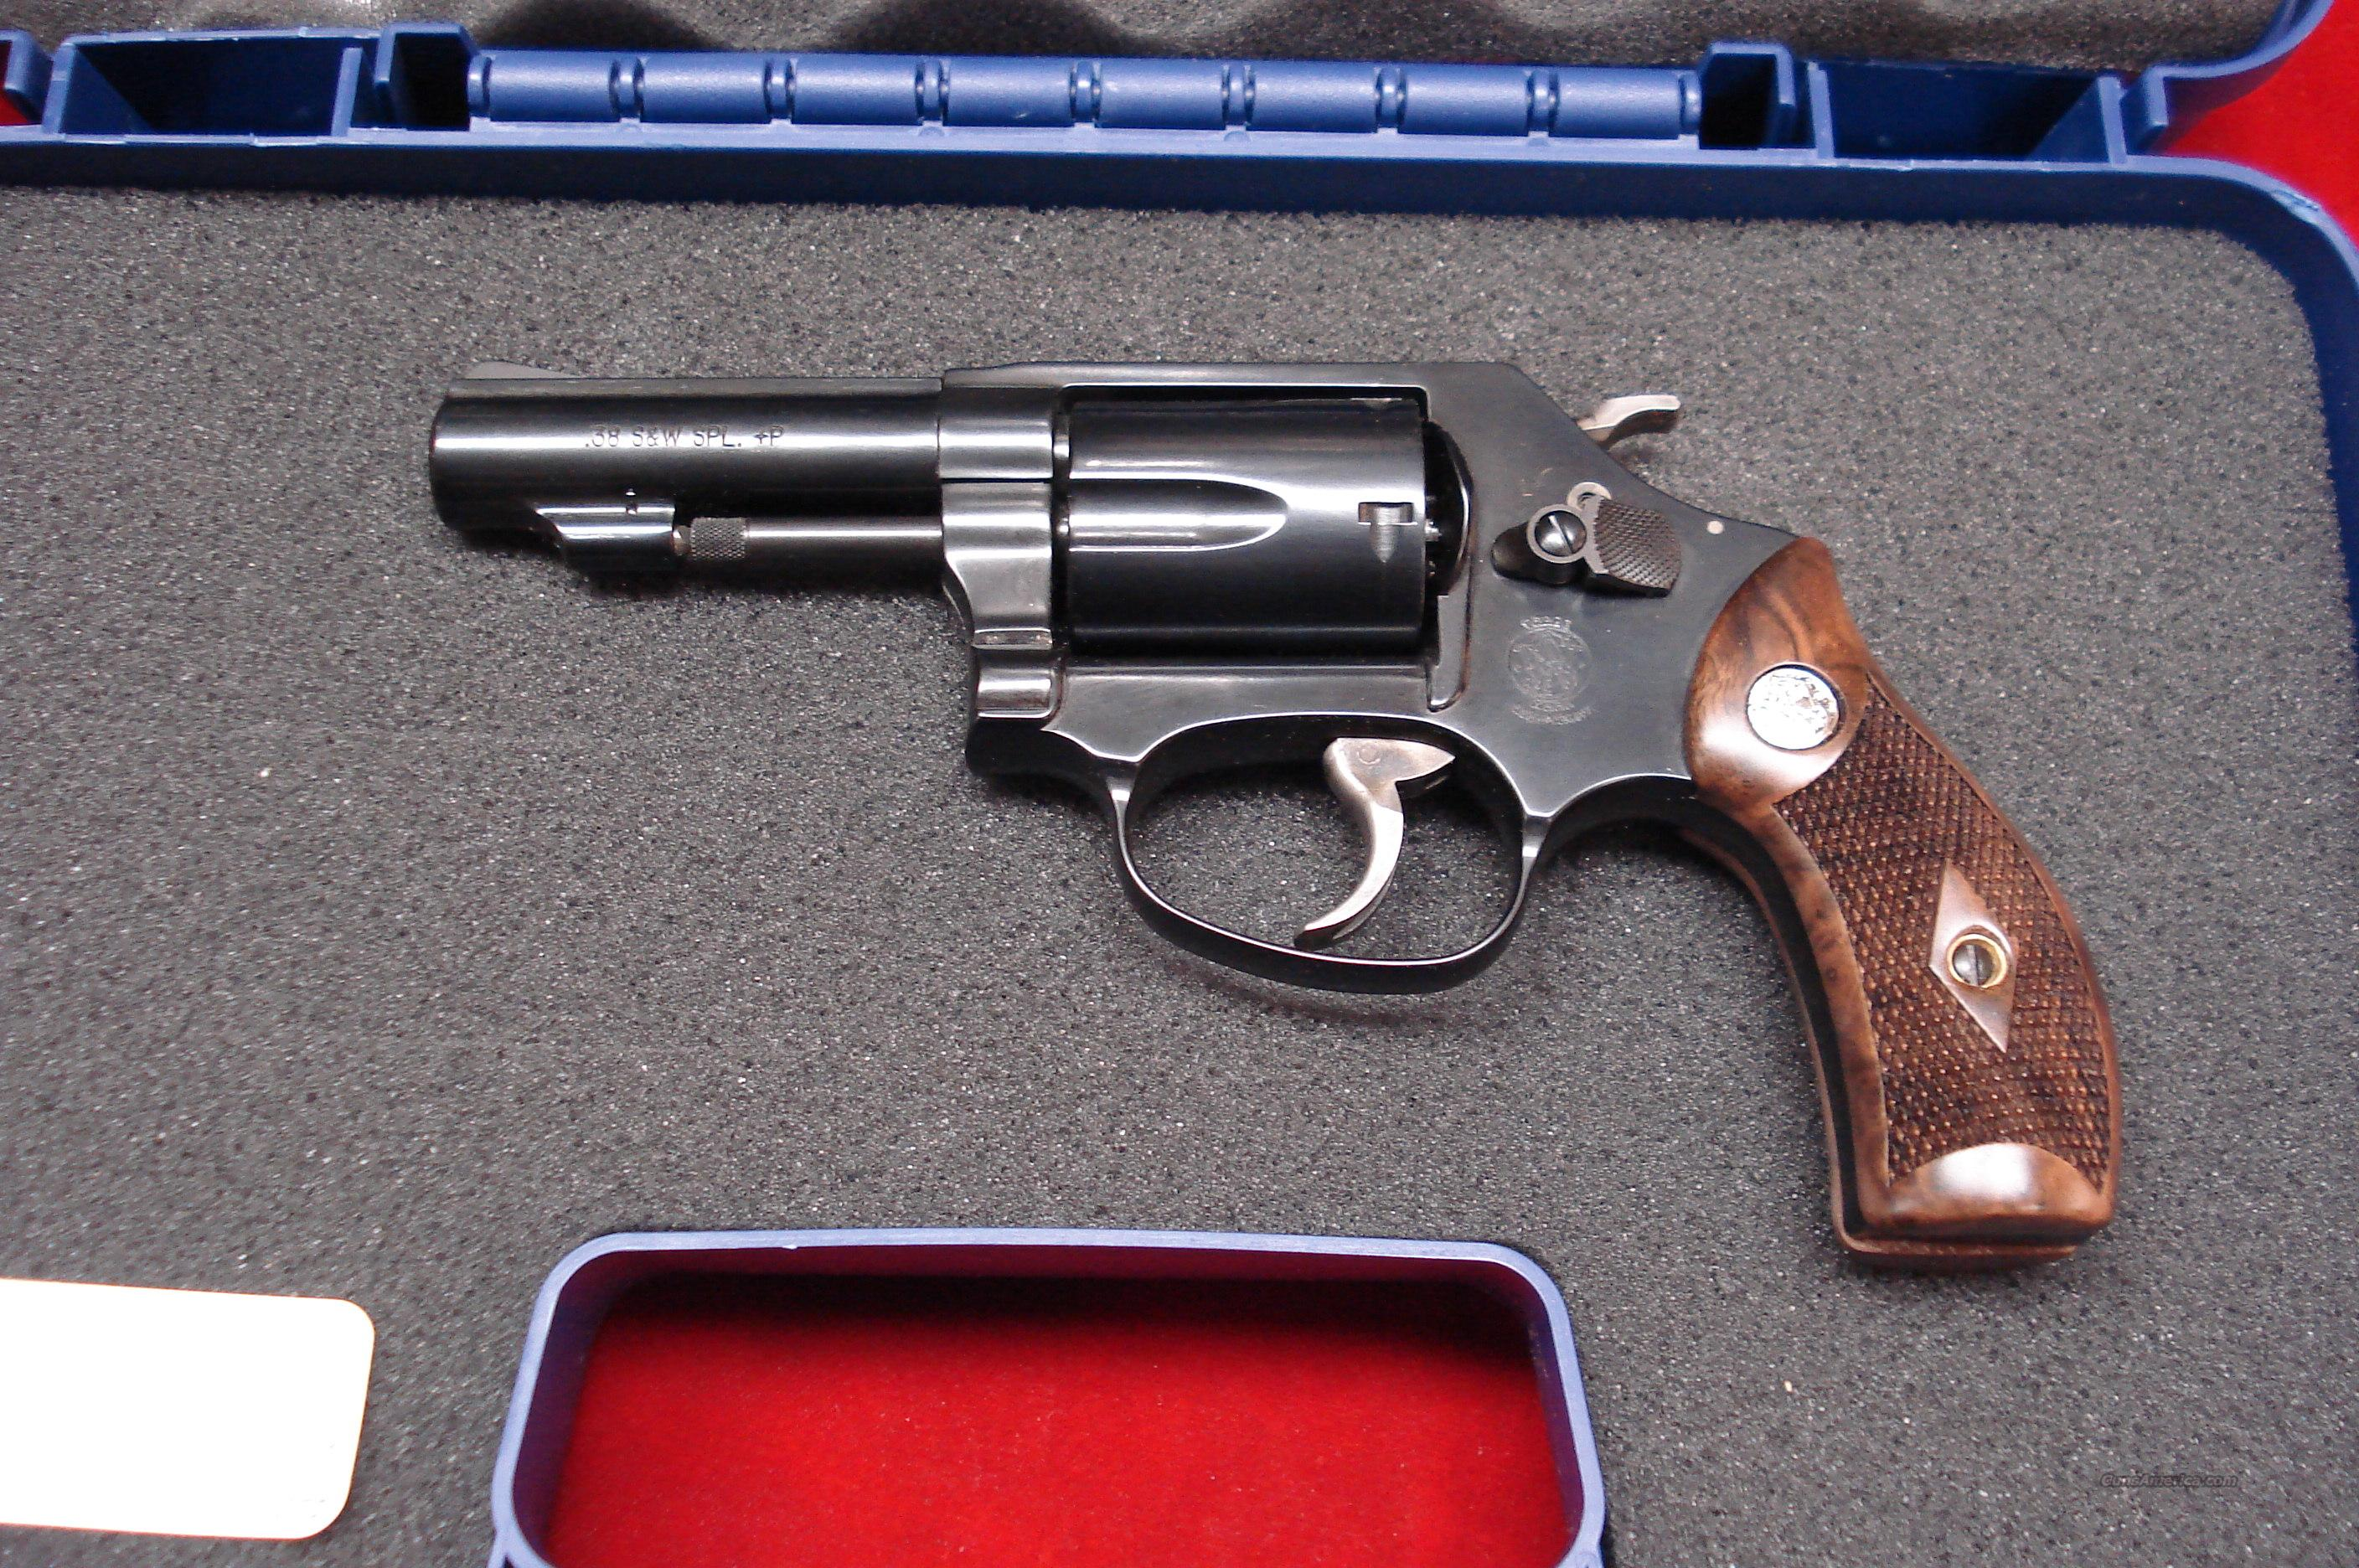 SMITH AND WESSON MODEL MODEL 36 CLASSIC 38SPL. BLUE NEW   Guns > Pistols > Smith & Wesson Revolvers > Pocket Pistols